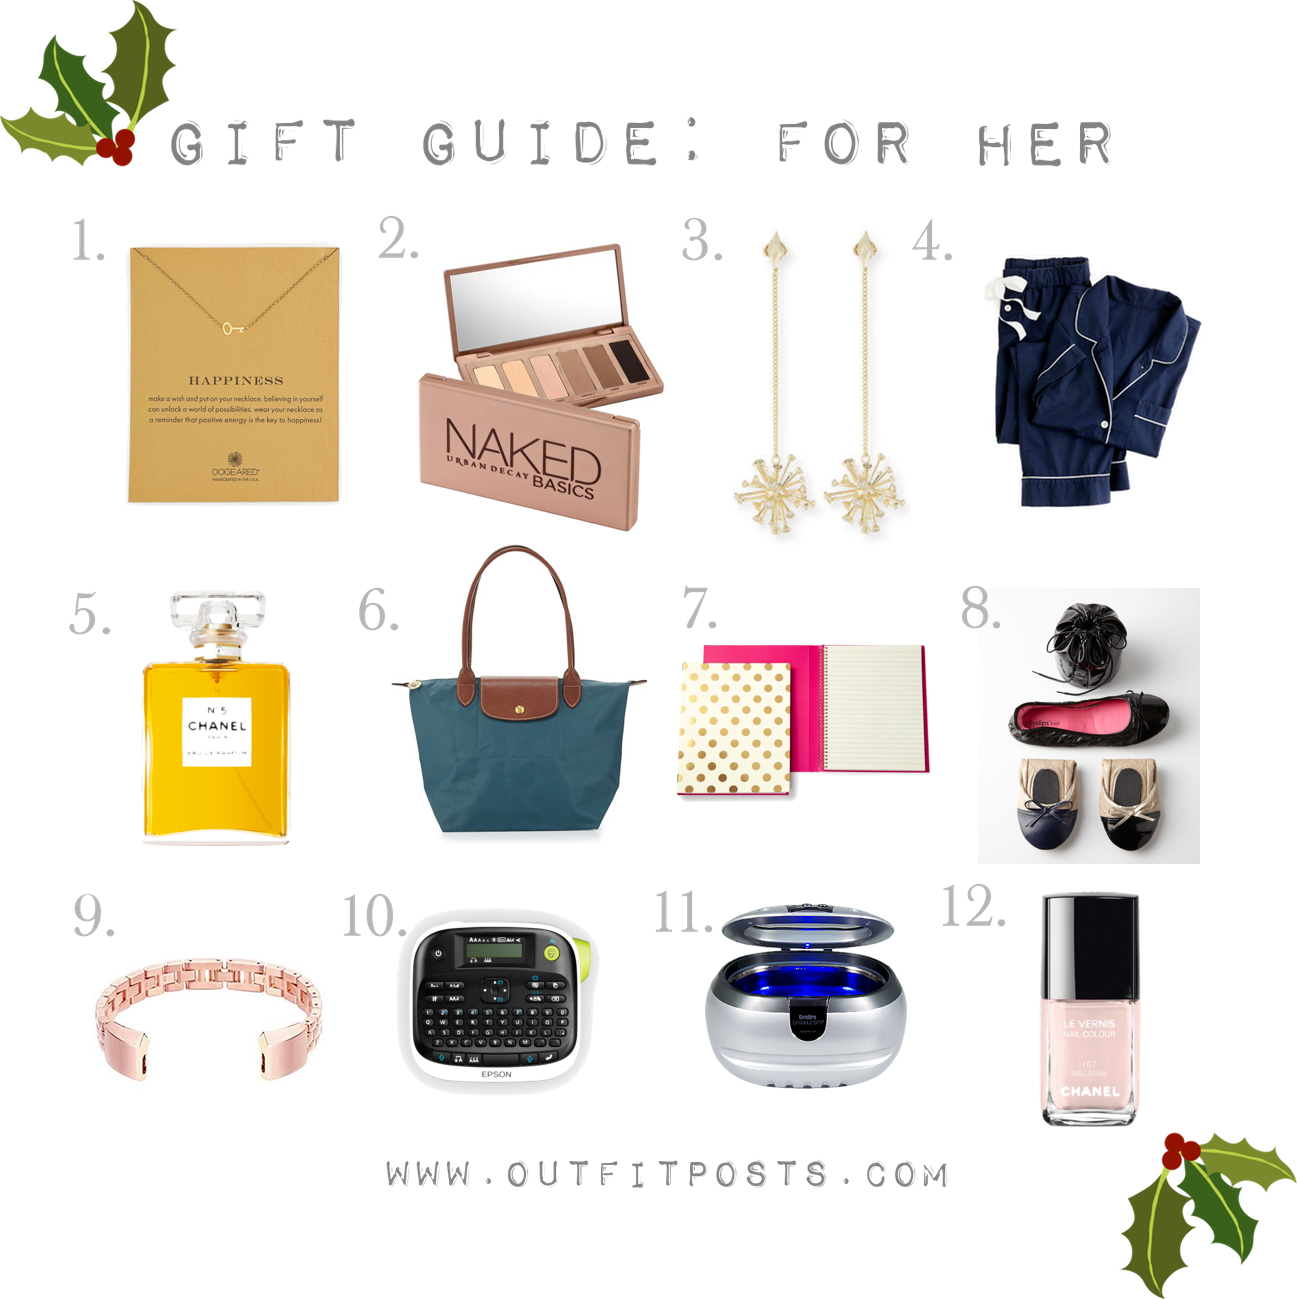 giftguide_her_2